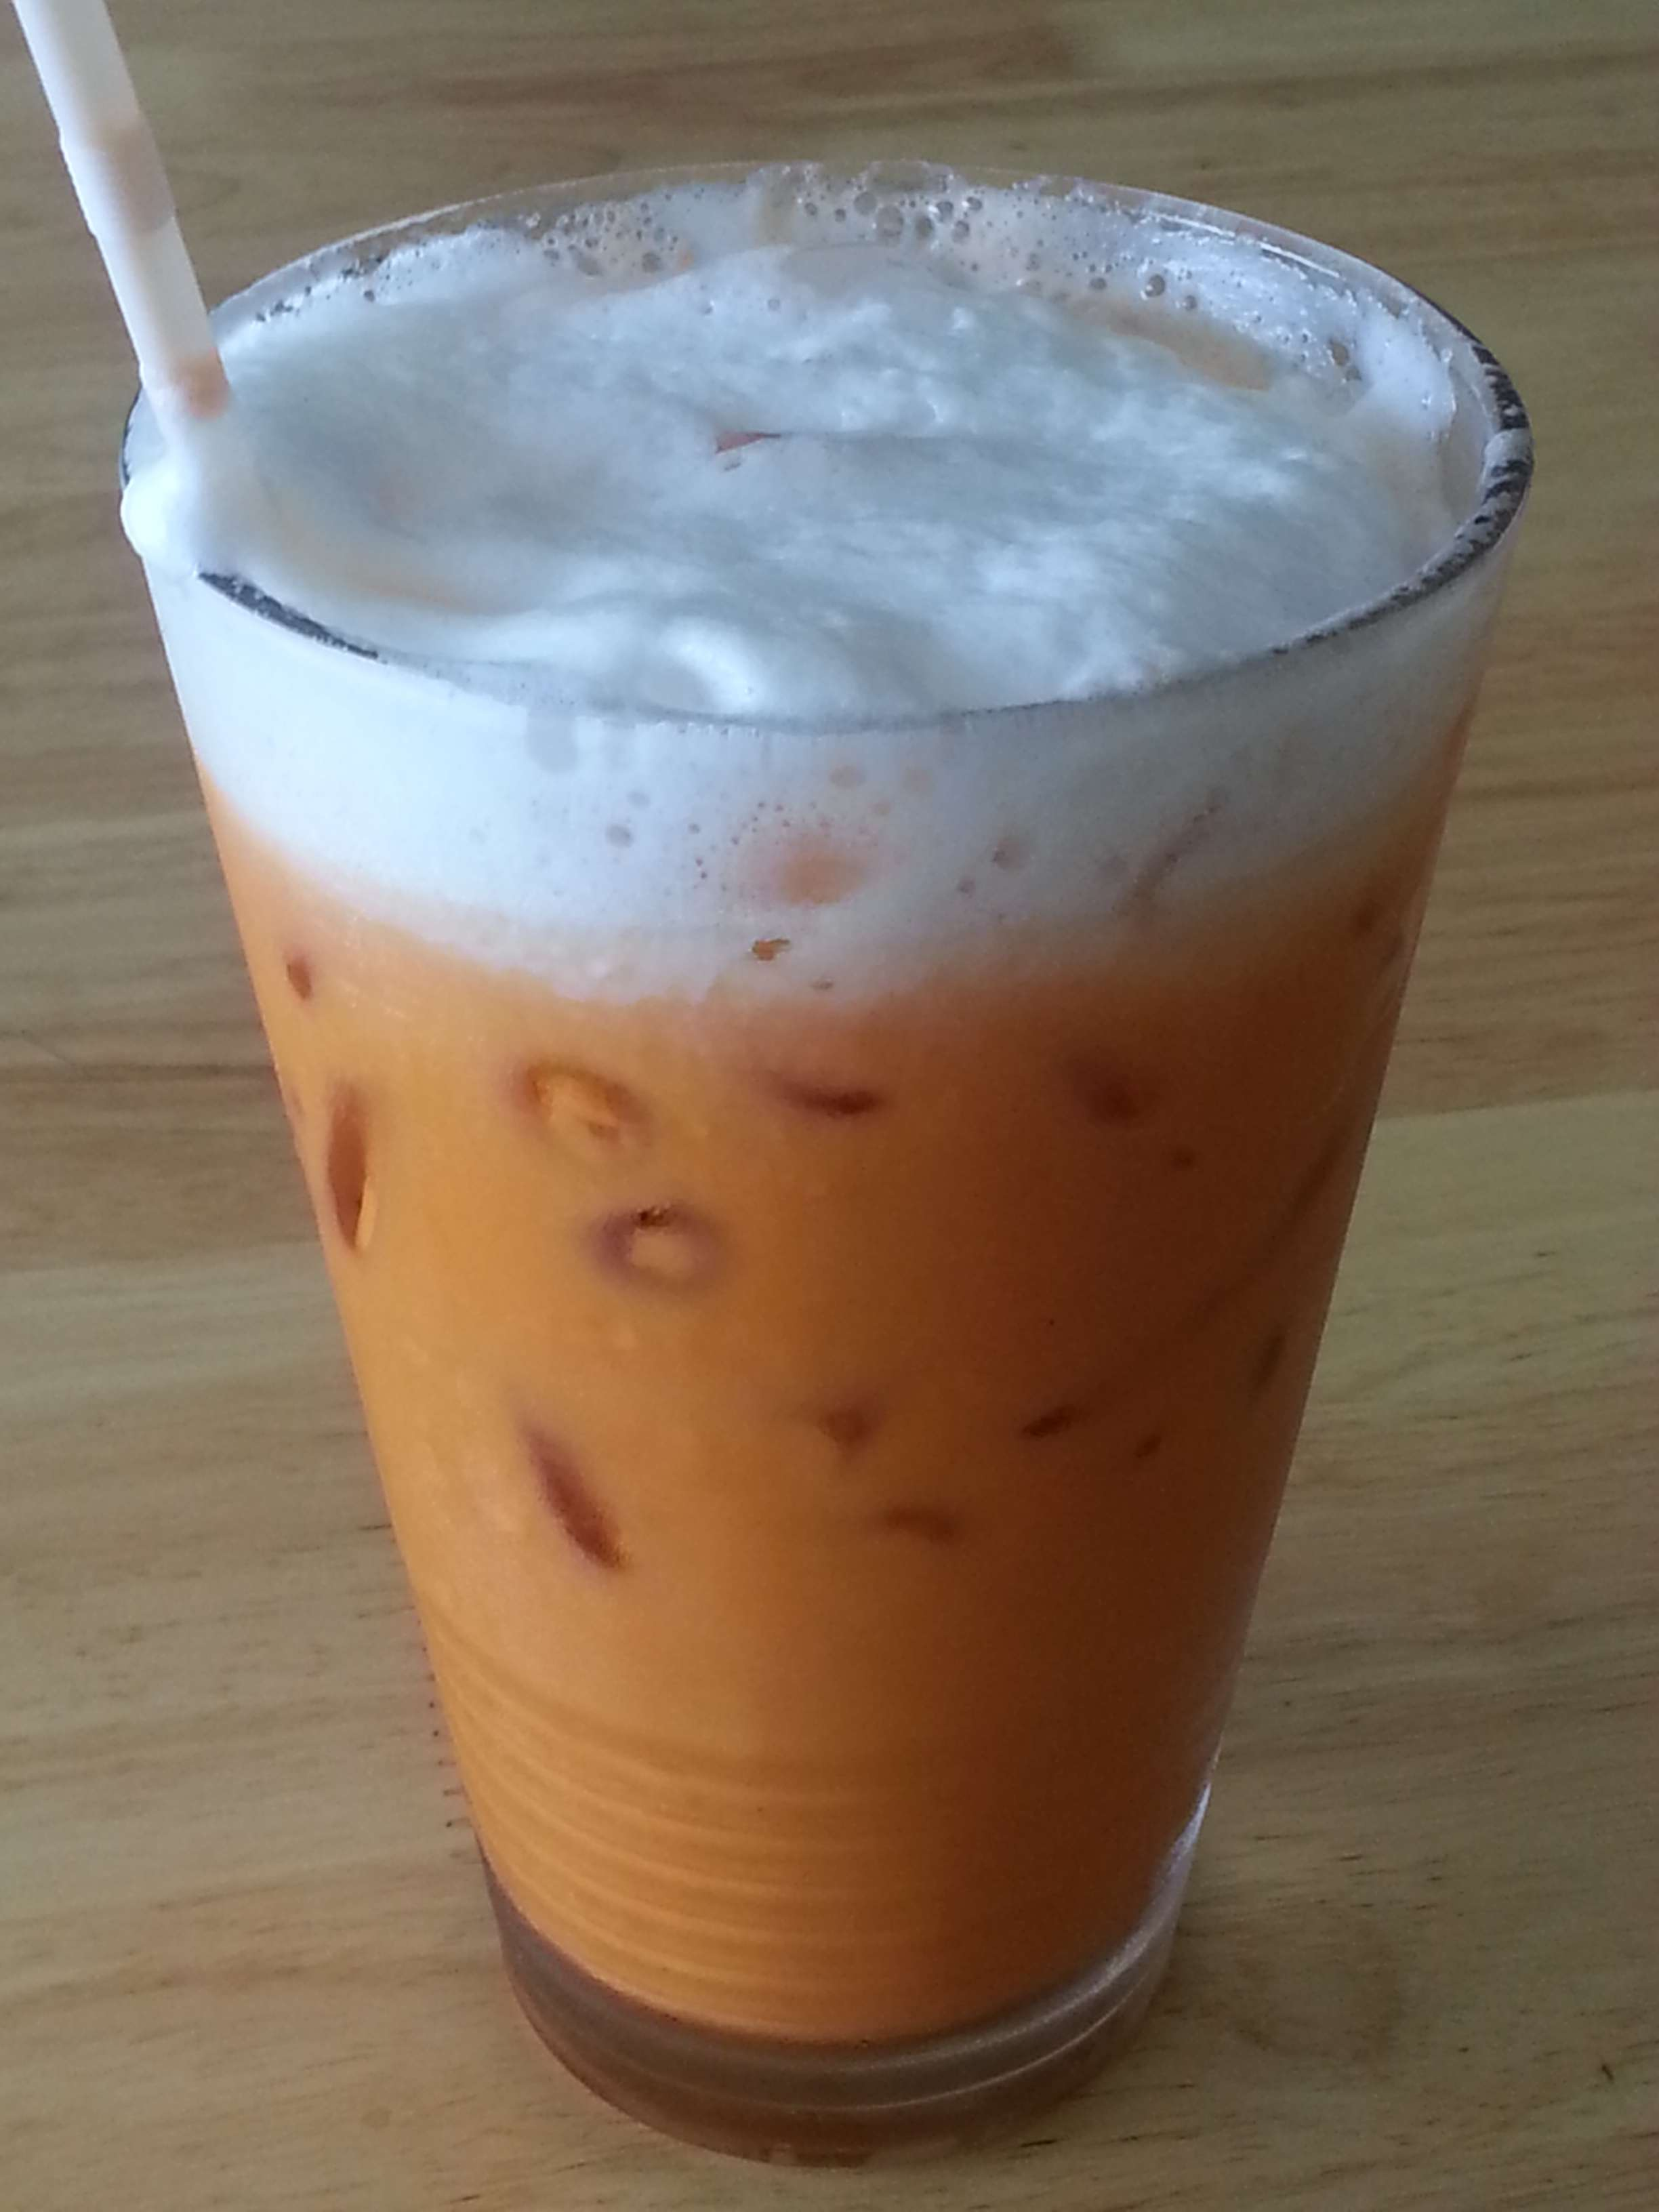 About Thai Teas and Tea in Thailand